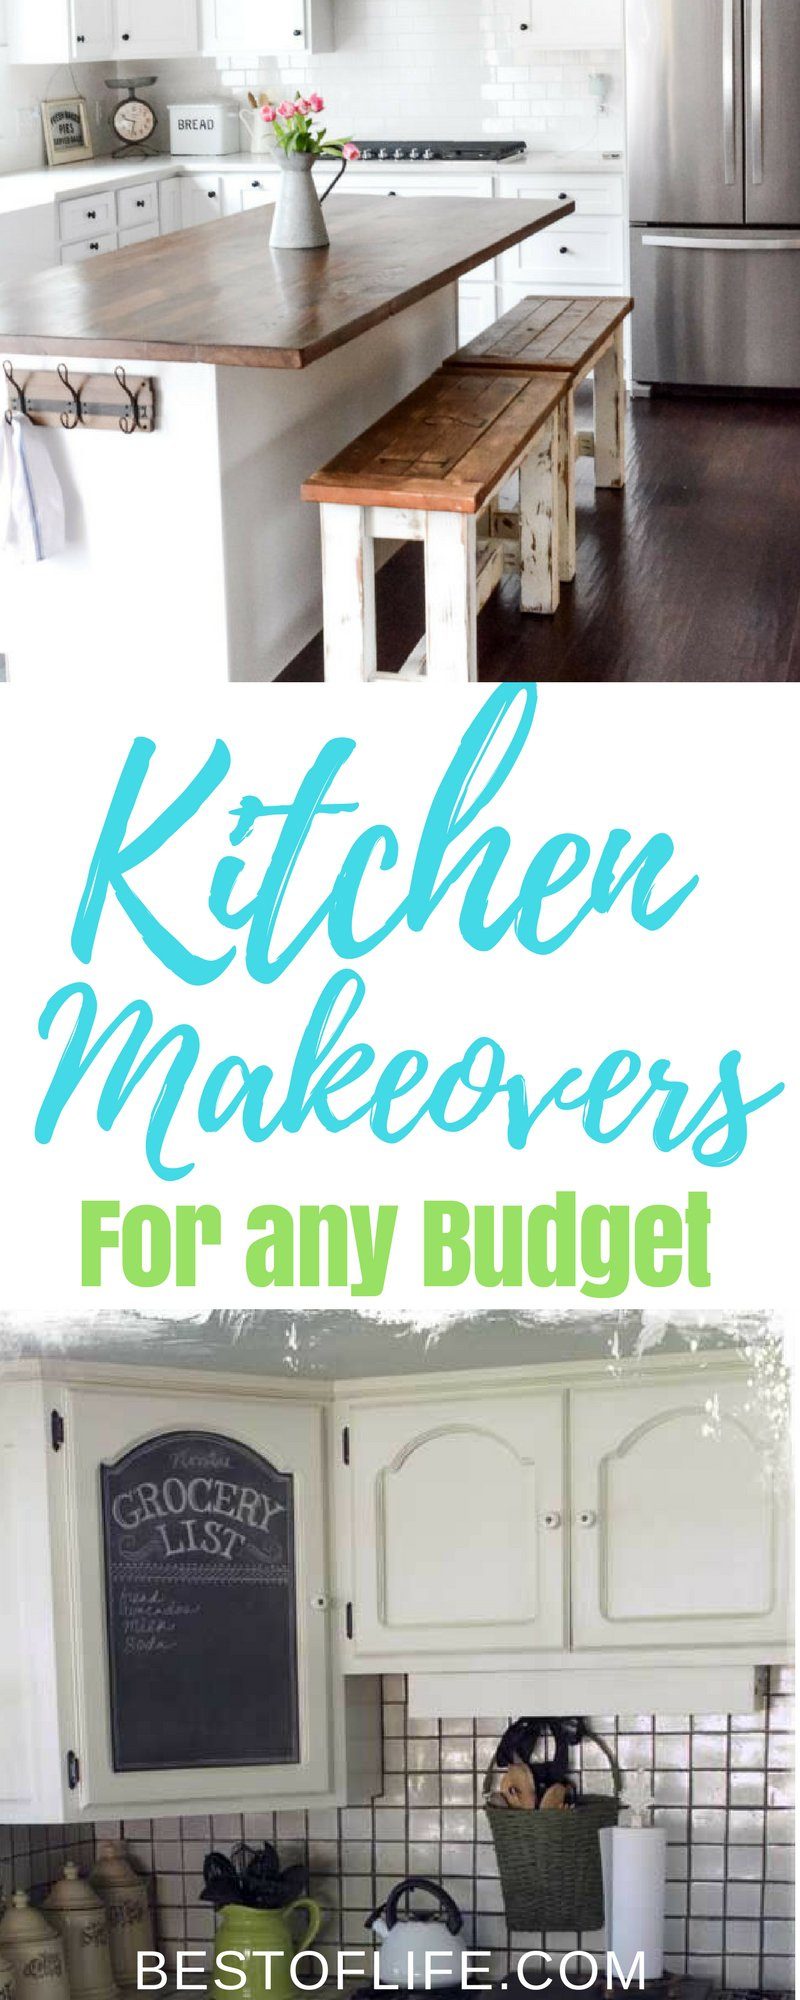 There are plenty of DIY projects one can do in their home and kitchen makeover ideas are the perfect place to start when you want to spruce things up a bit. DIY Ideas | DIY Remodel Ideas | DIY Kitchen Ideas | DIY Home Makeover Ideas | Best DIY Kitchen Ideas | Easy DIY Kitchen Ideas | Cheap DIY Kitchen Ideas